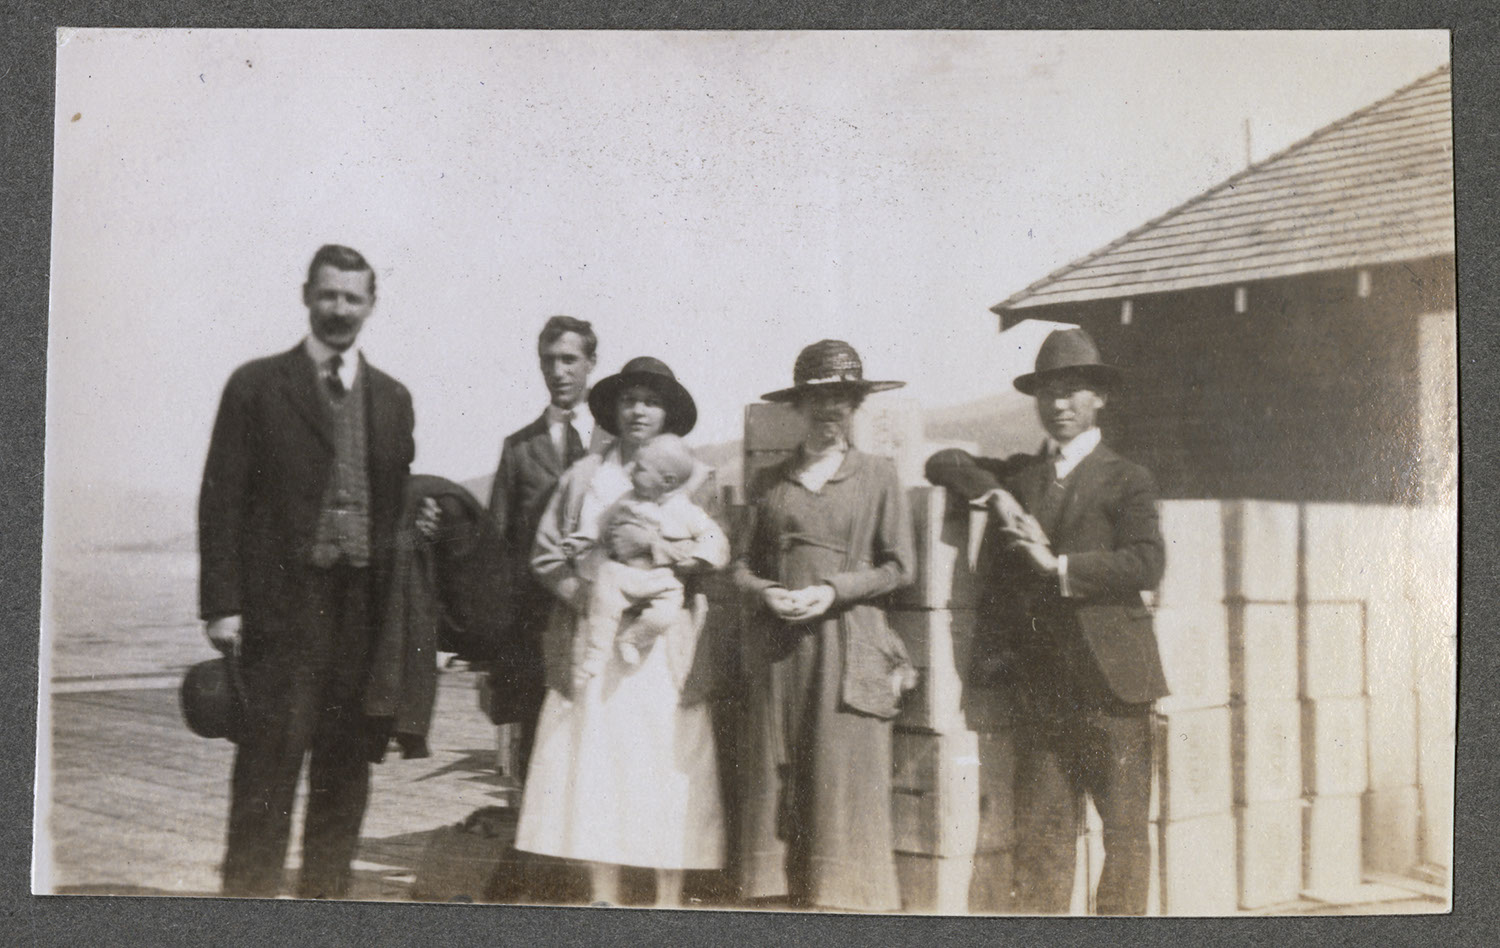 Rev. Osterhout and companions on a dock